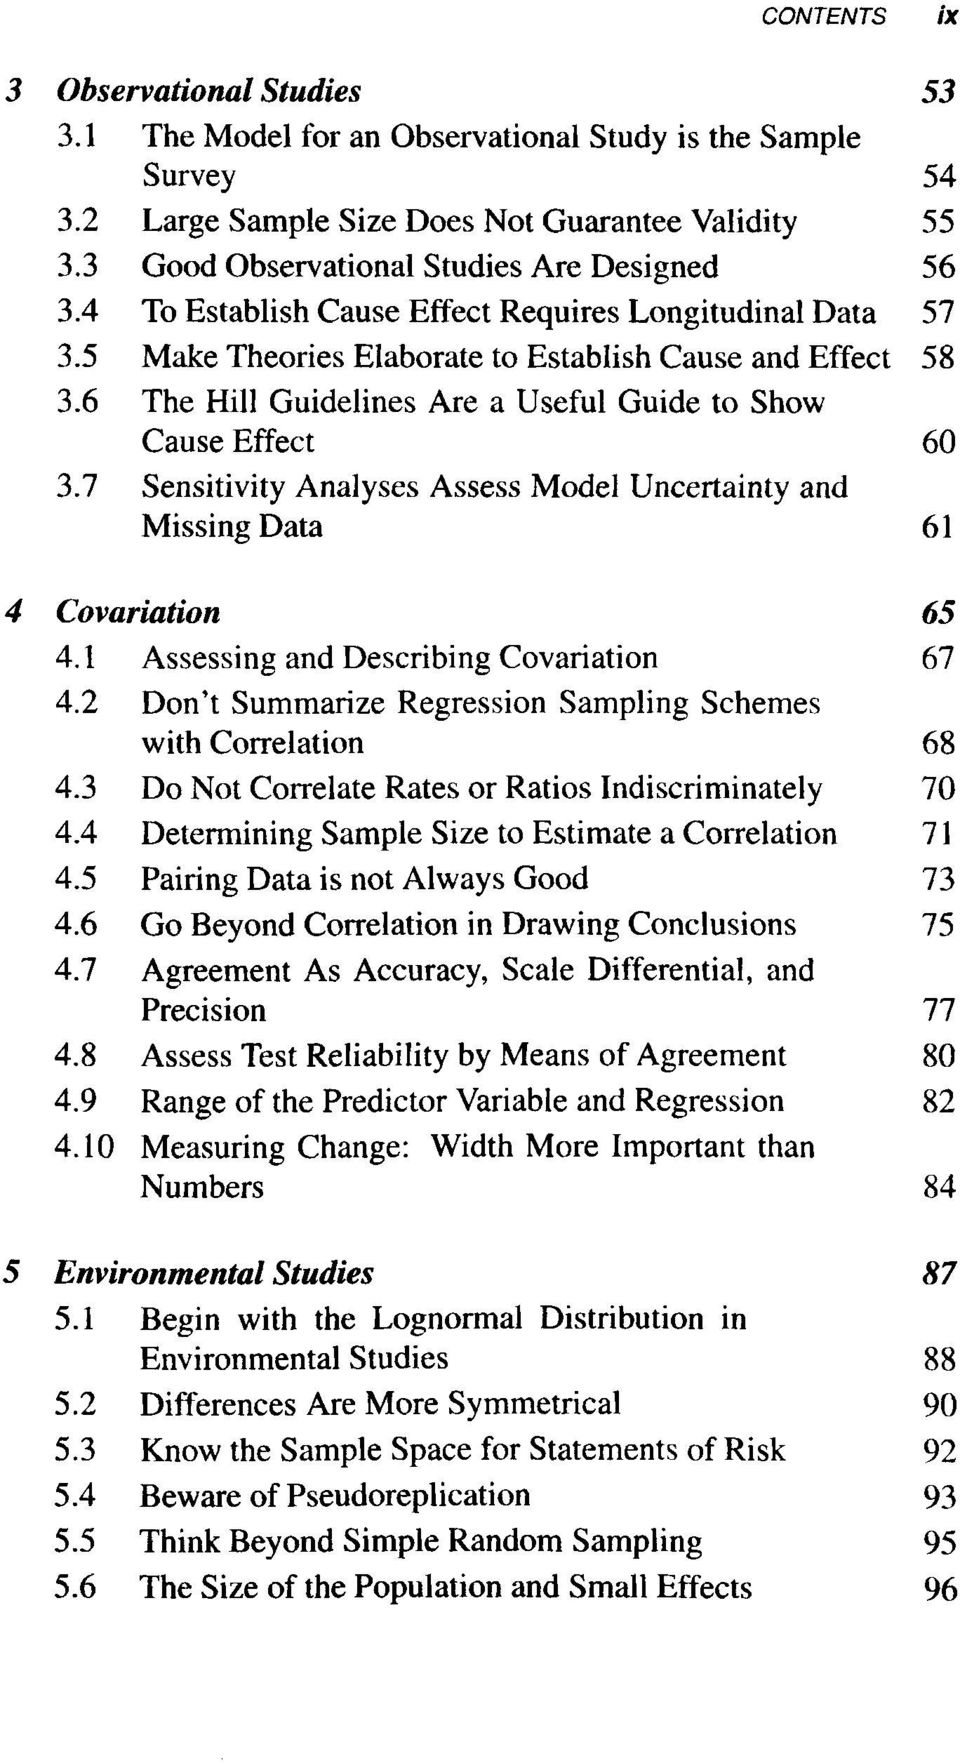 6 The Hill Guidelines Are a Useful Guide to Show Cause Effect 60 3.7 Sensitivity Analyses Assess Model Uncertainty and Missing Data 61 4 Covariation 65 4.1 Assessing and Describing Covariation 67 4.